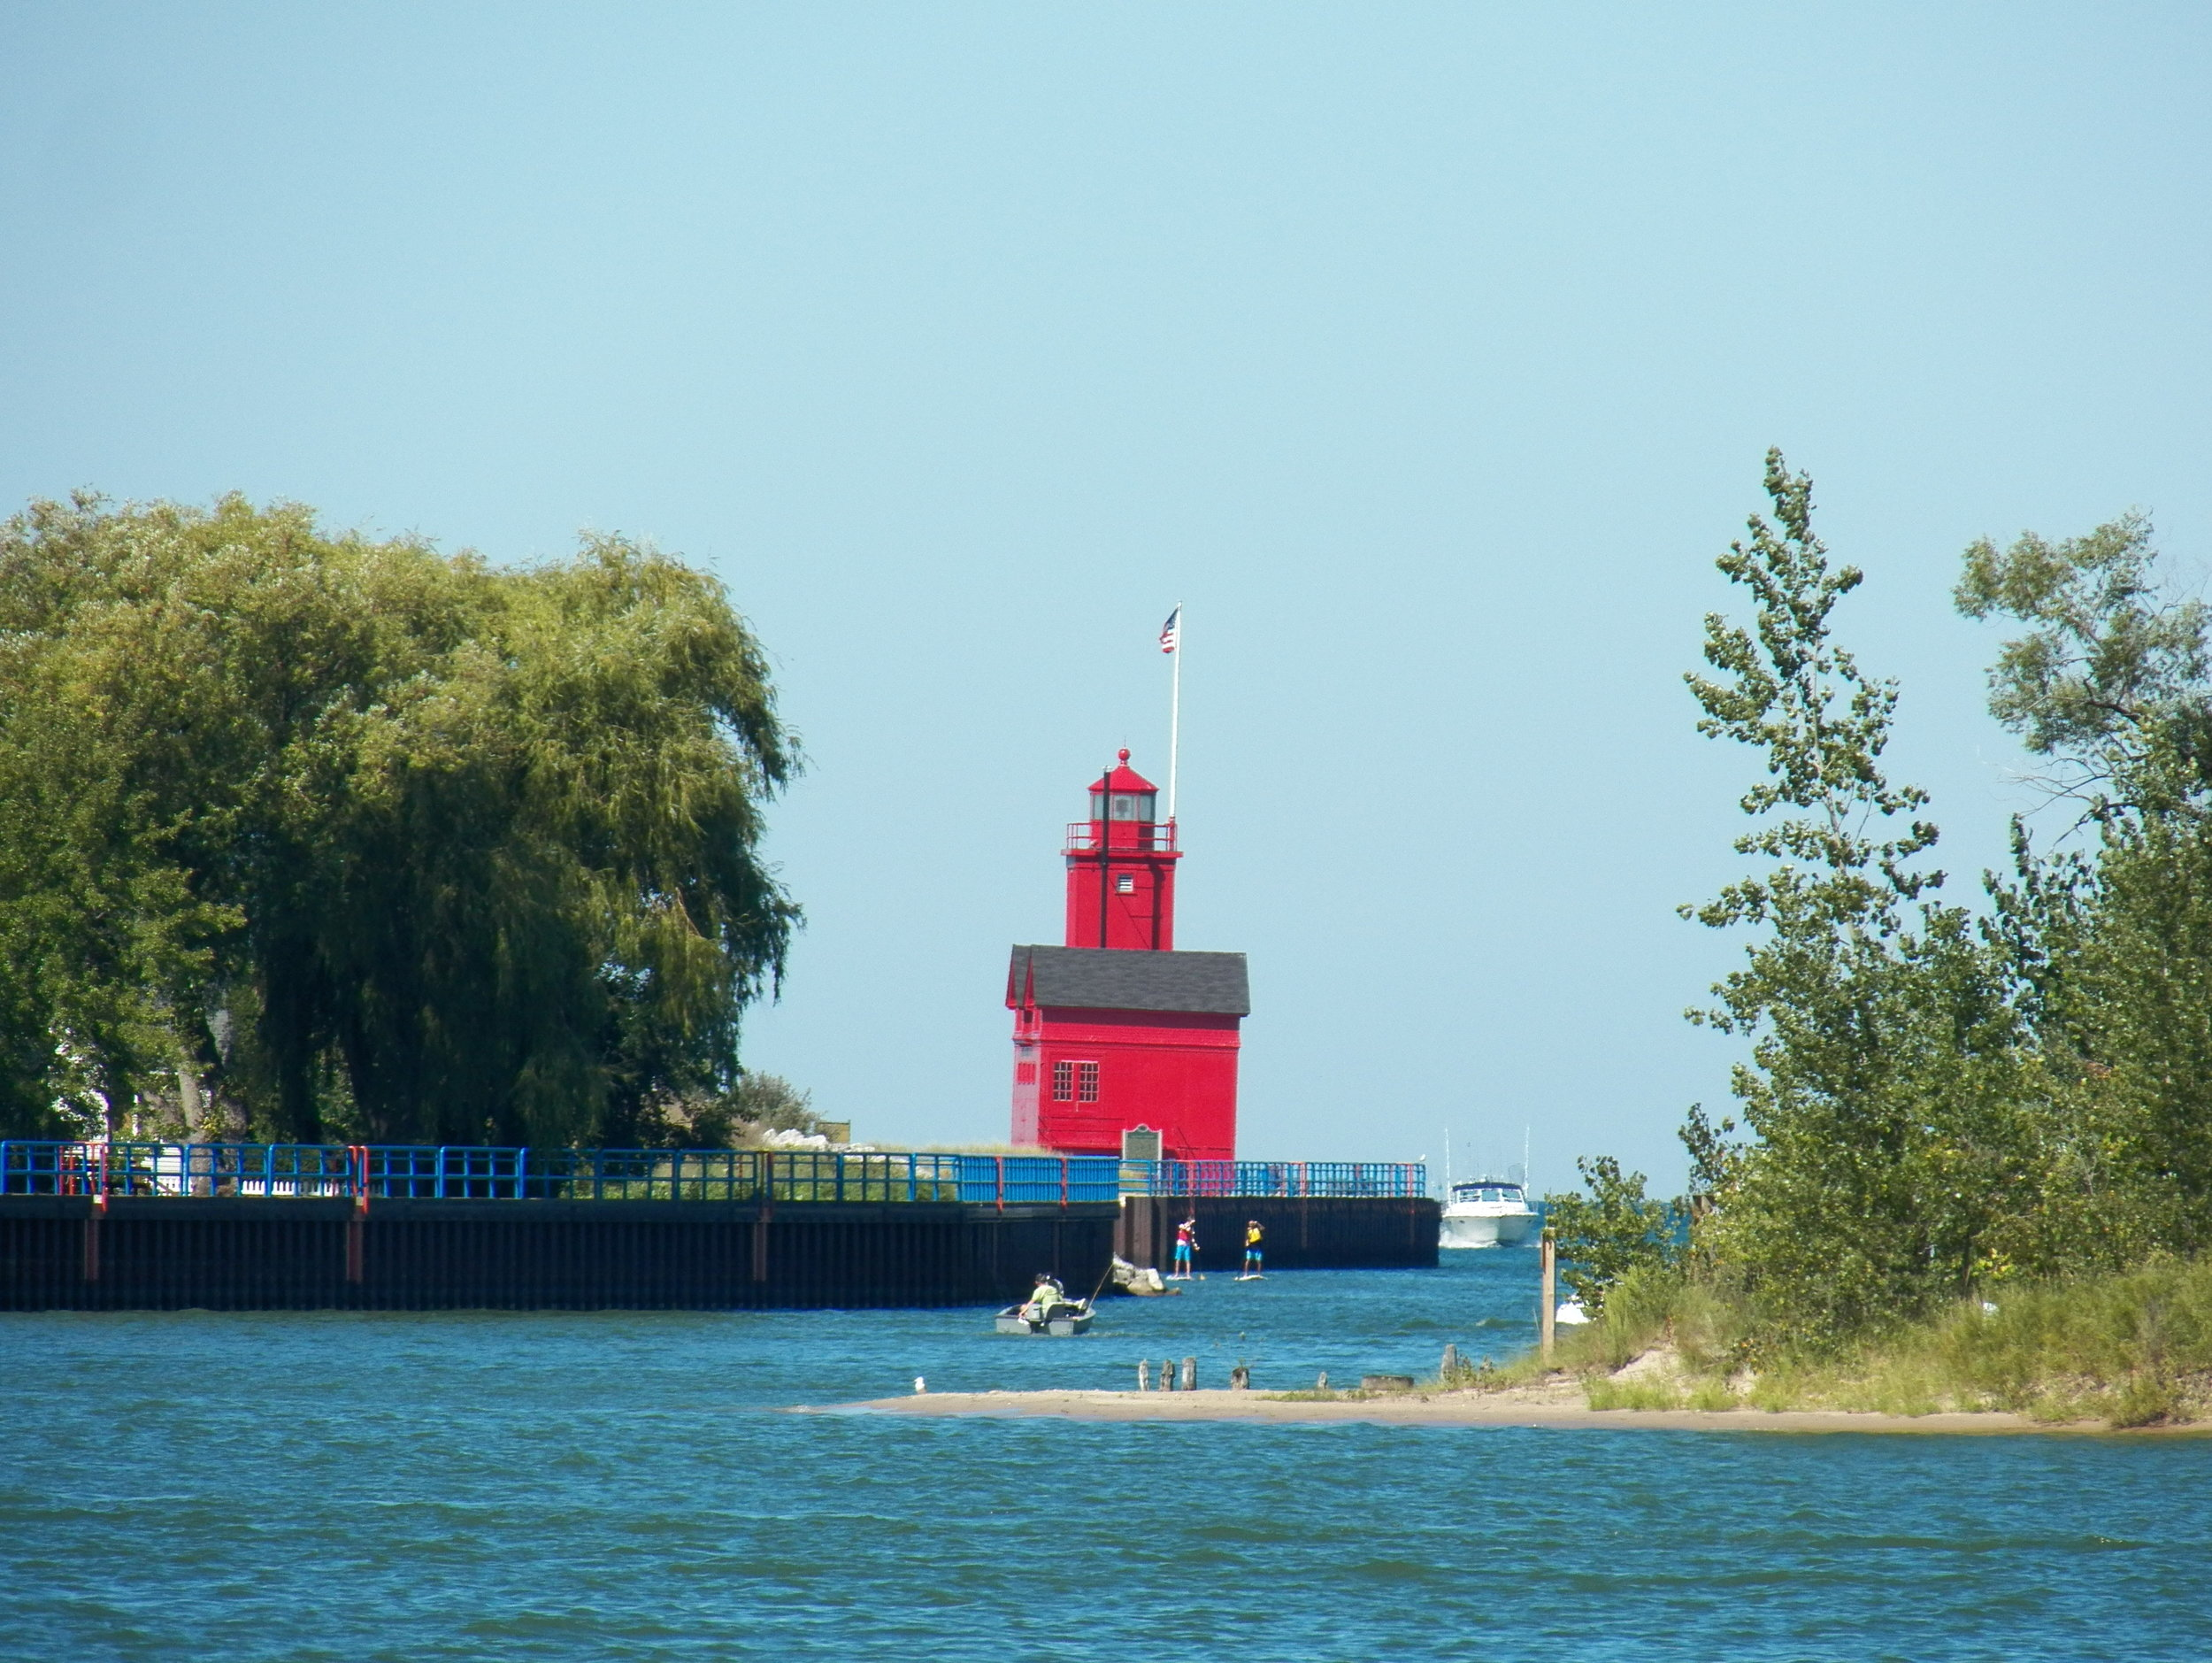 Big Red Lighthouse in Holland, MI